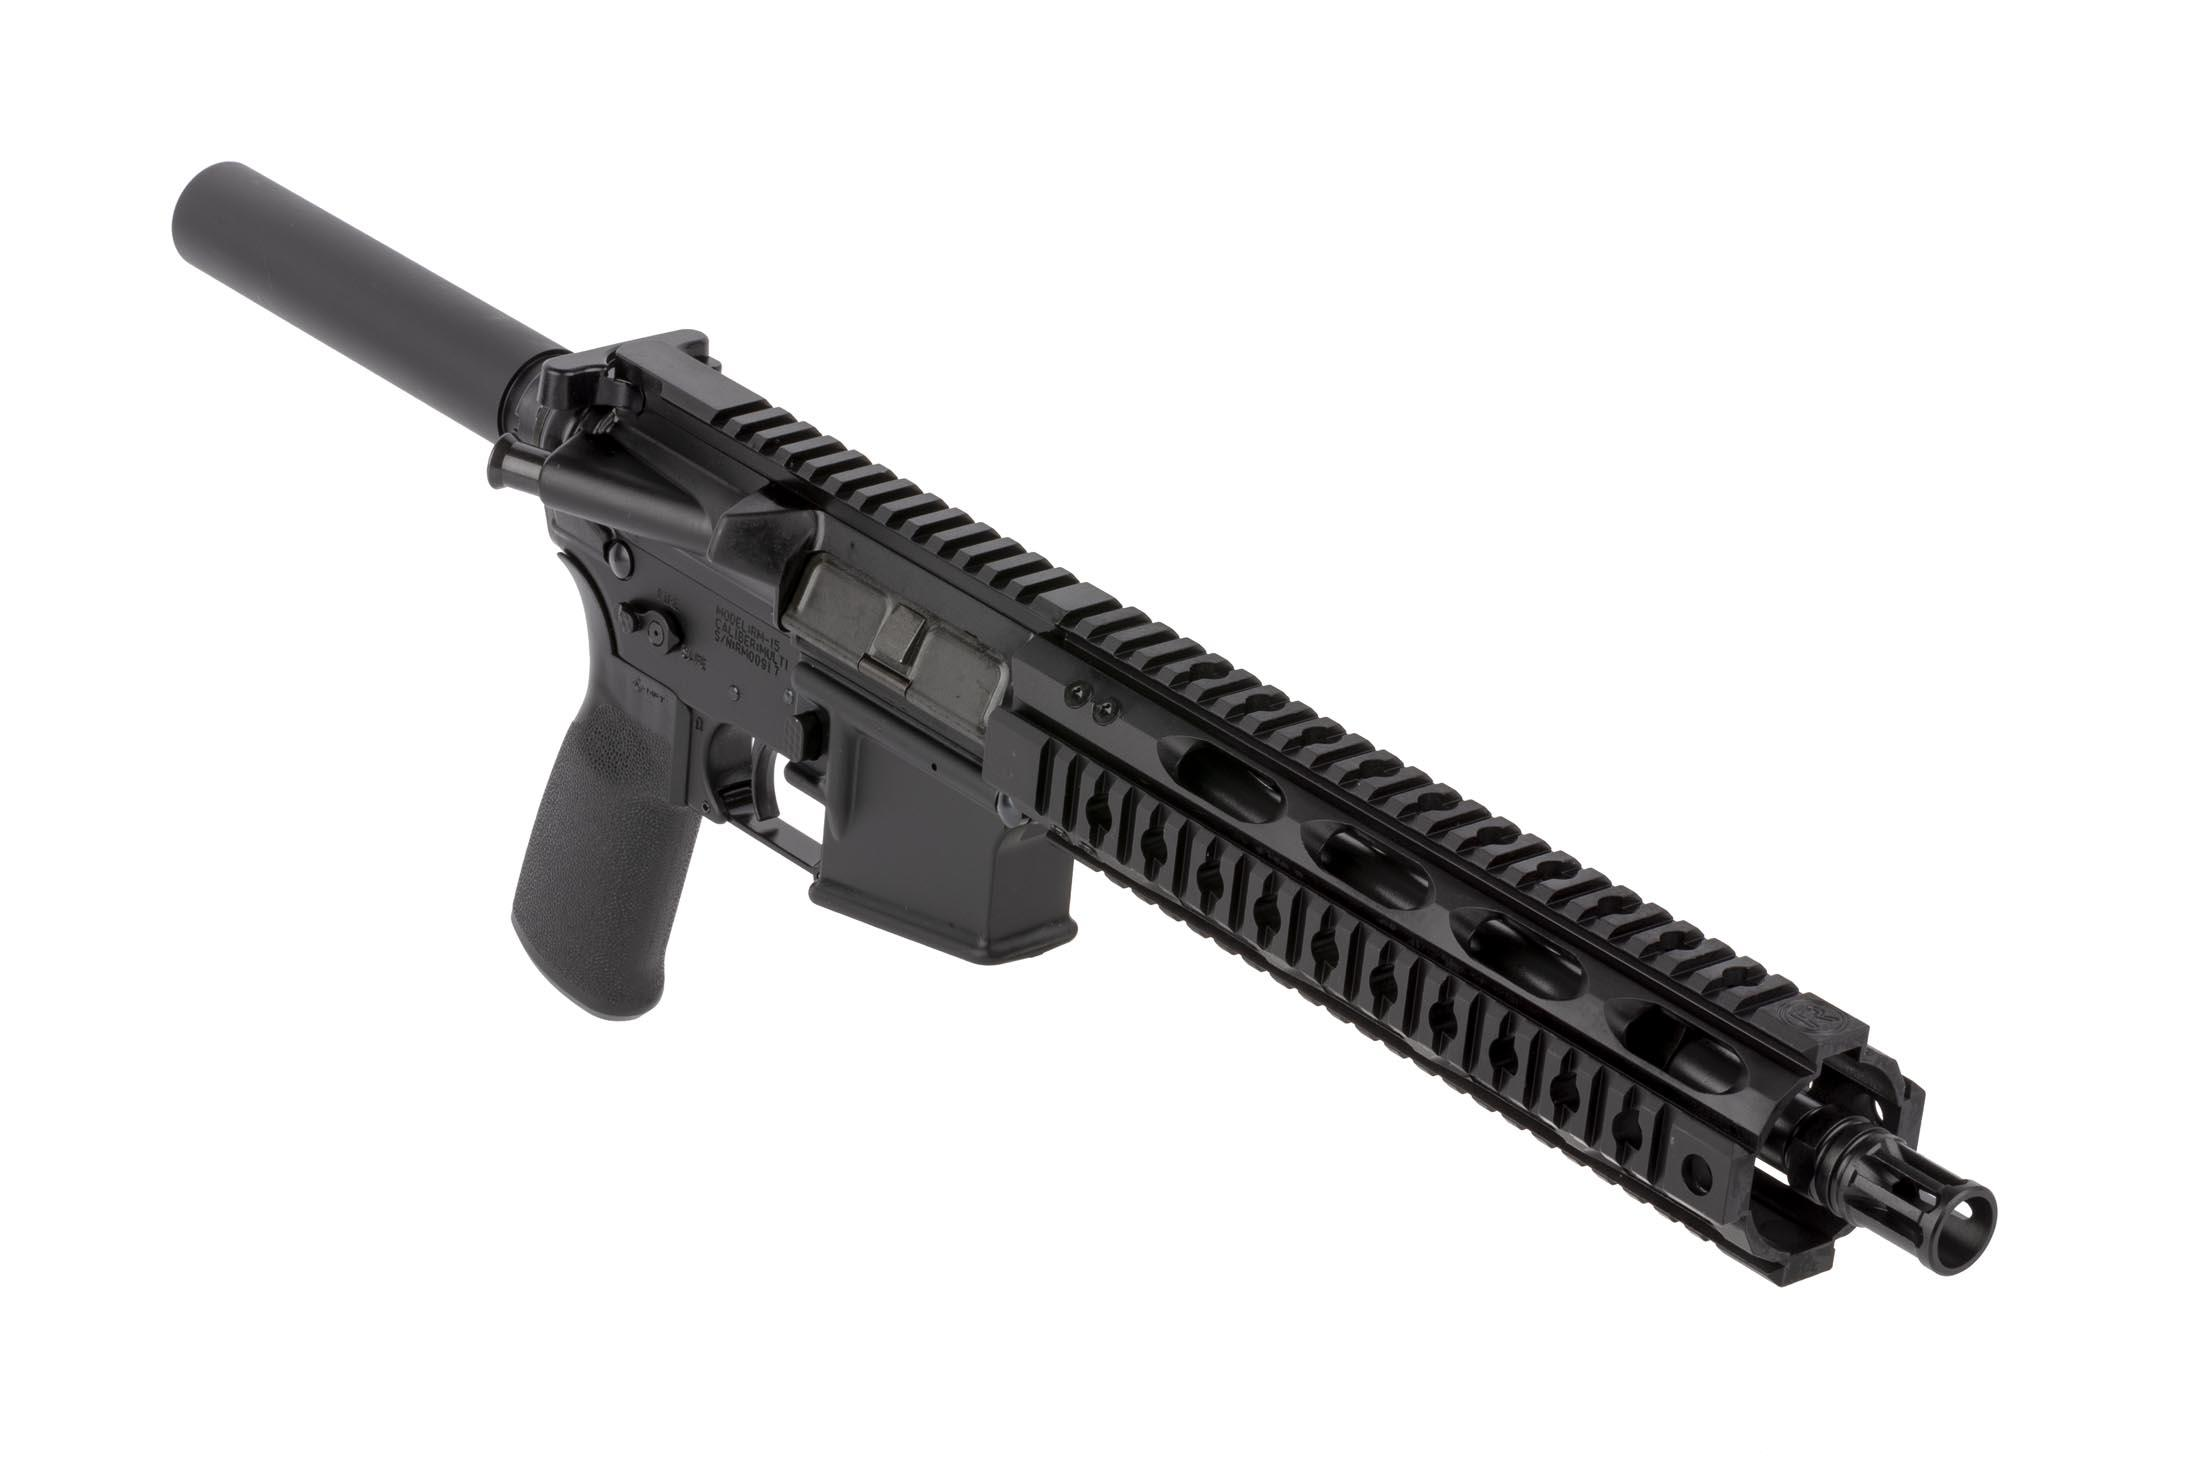 Radical Firearms 10.5in AR-15 pistol in 5.56 NATO is built with a lightweight 10in free float quad rail handguard